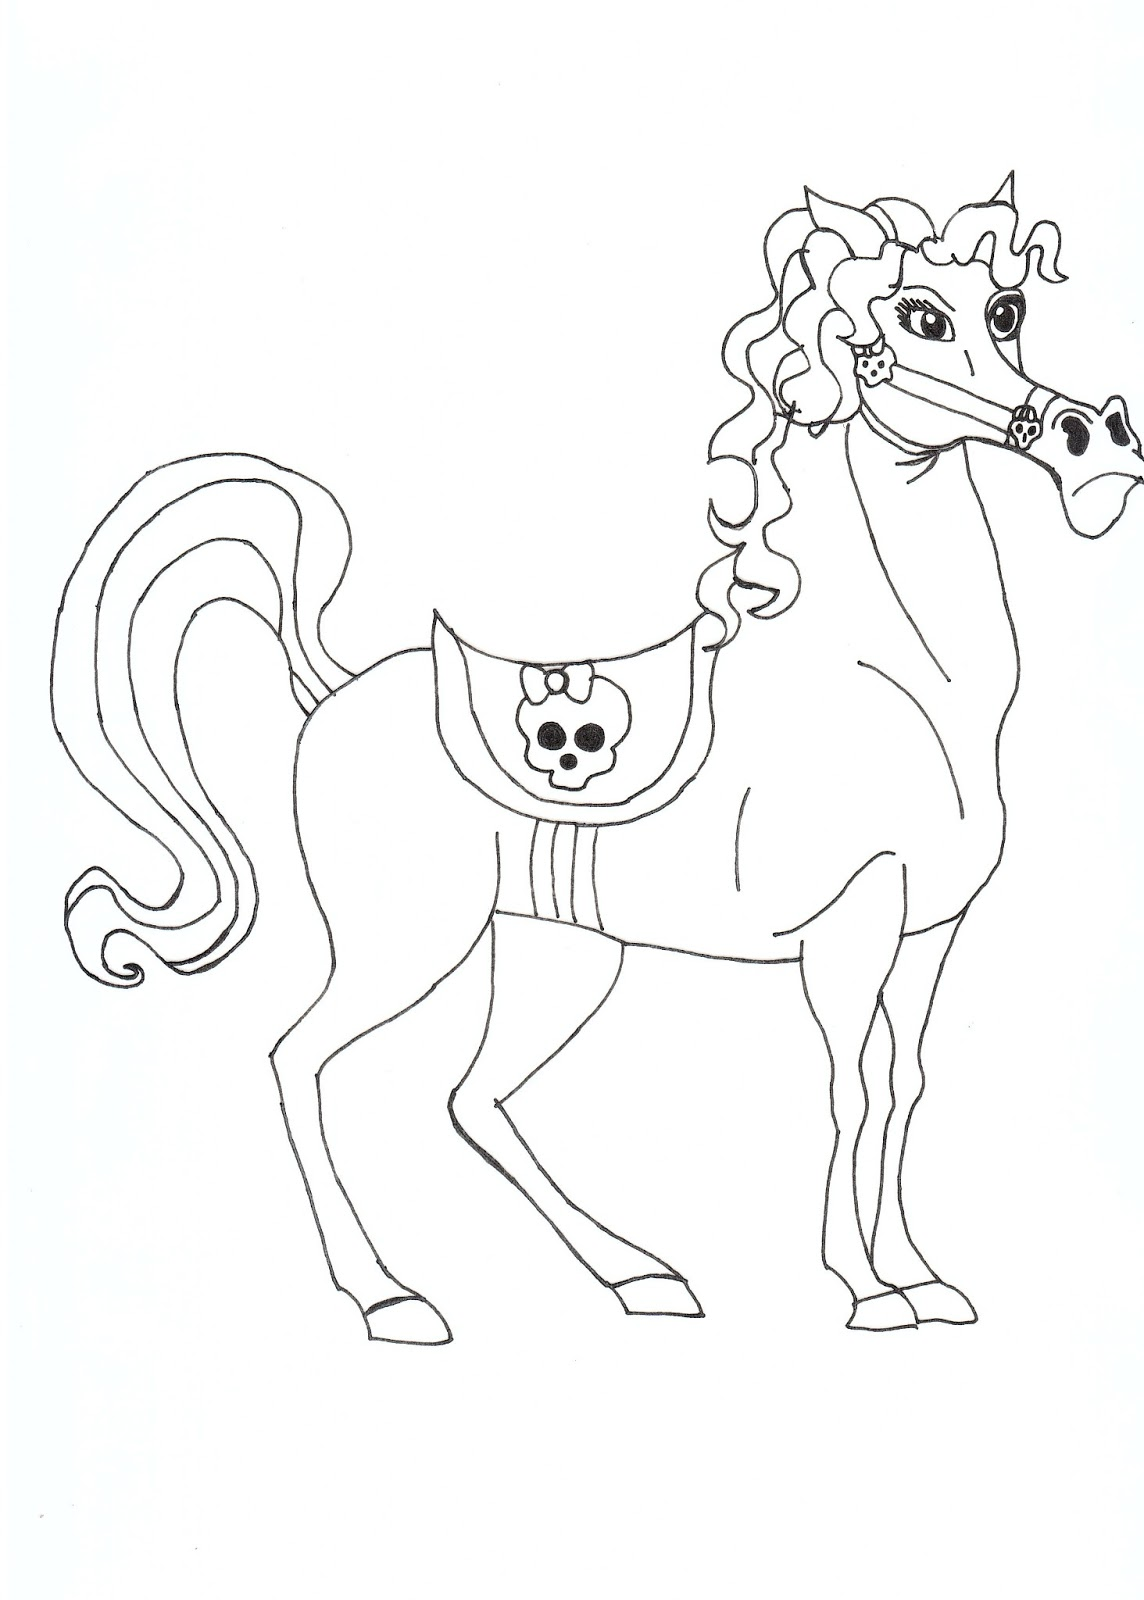 Free Printable Monster High Coloring Pages: Pet Horse